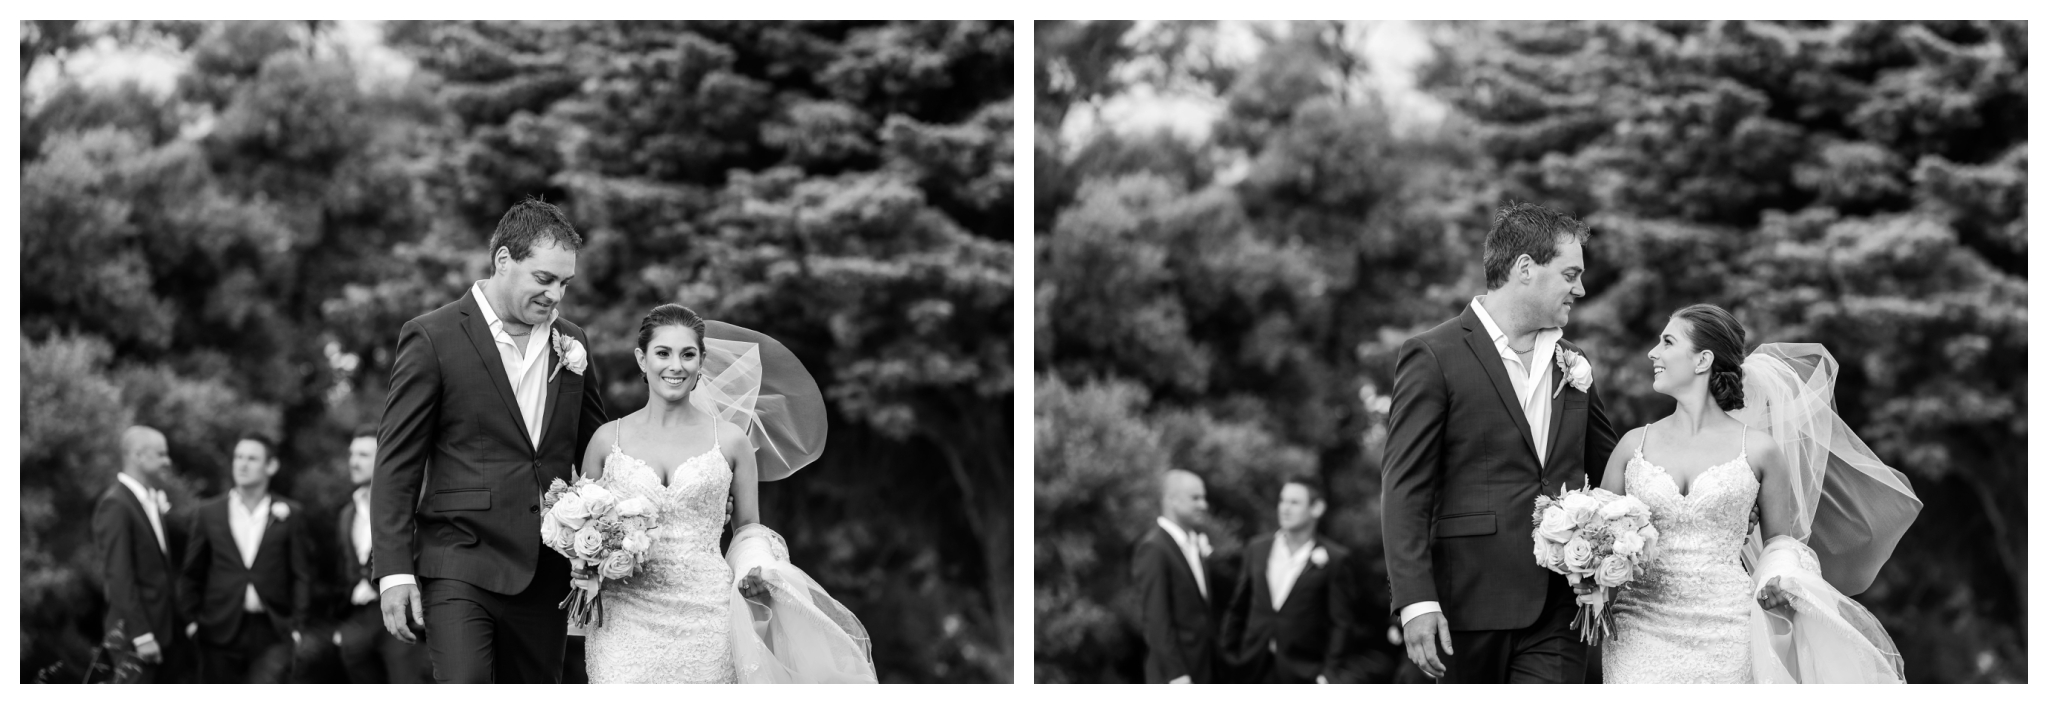 Mandurah Wedding Photography